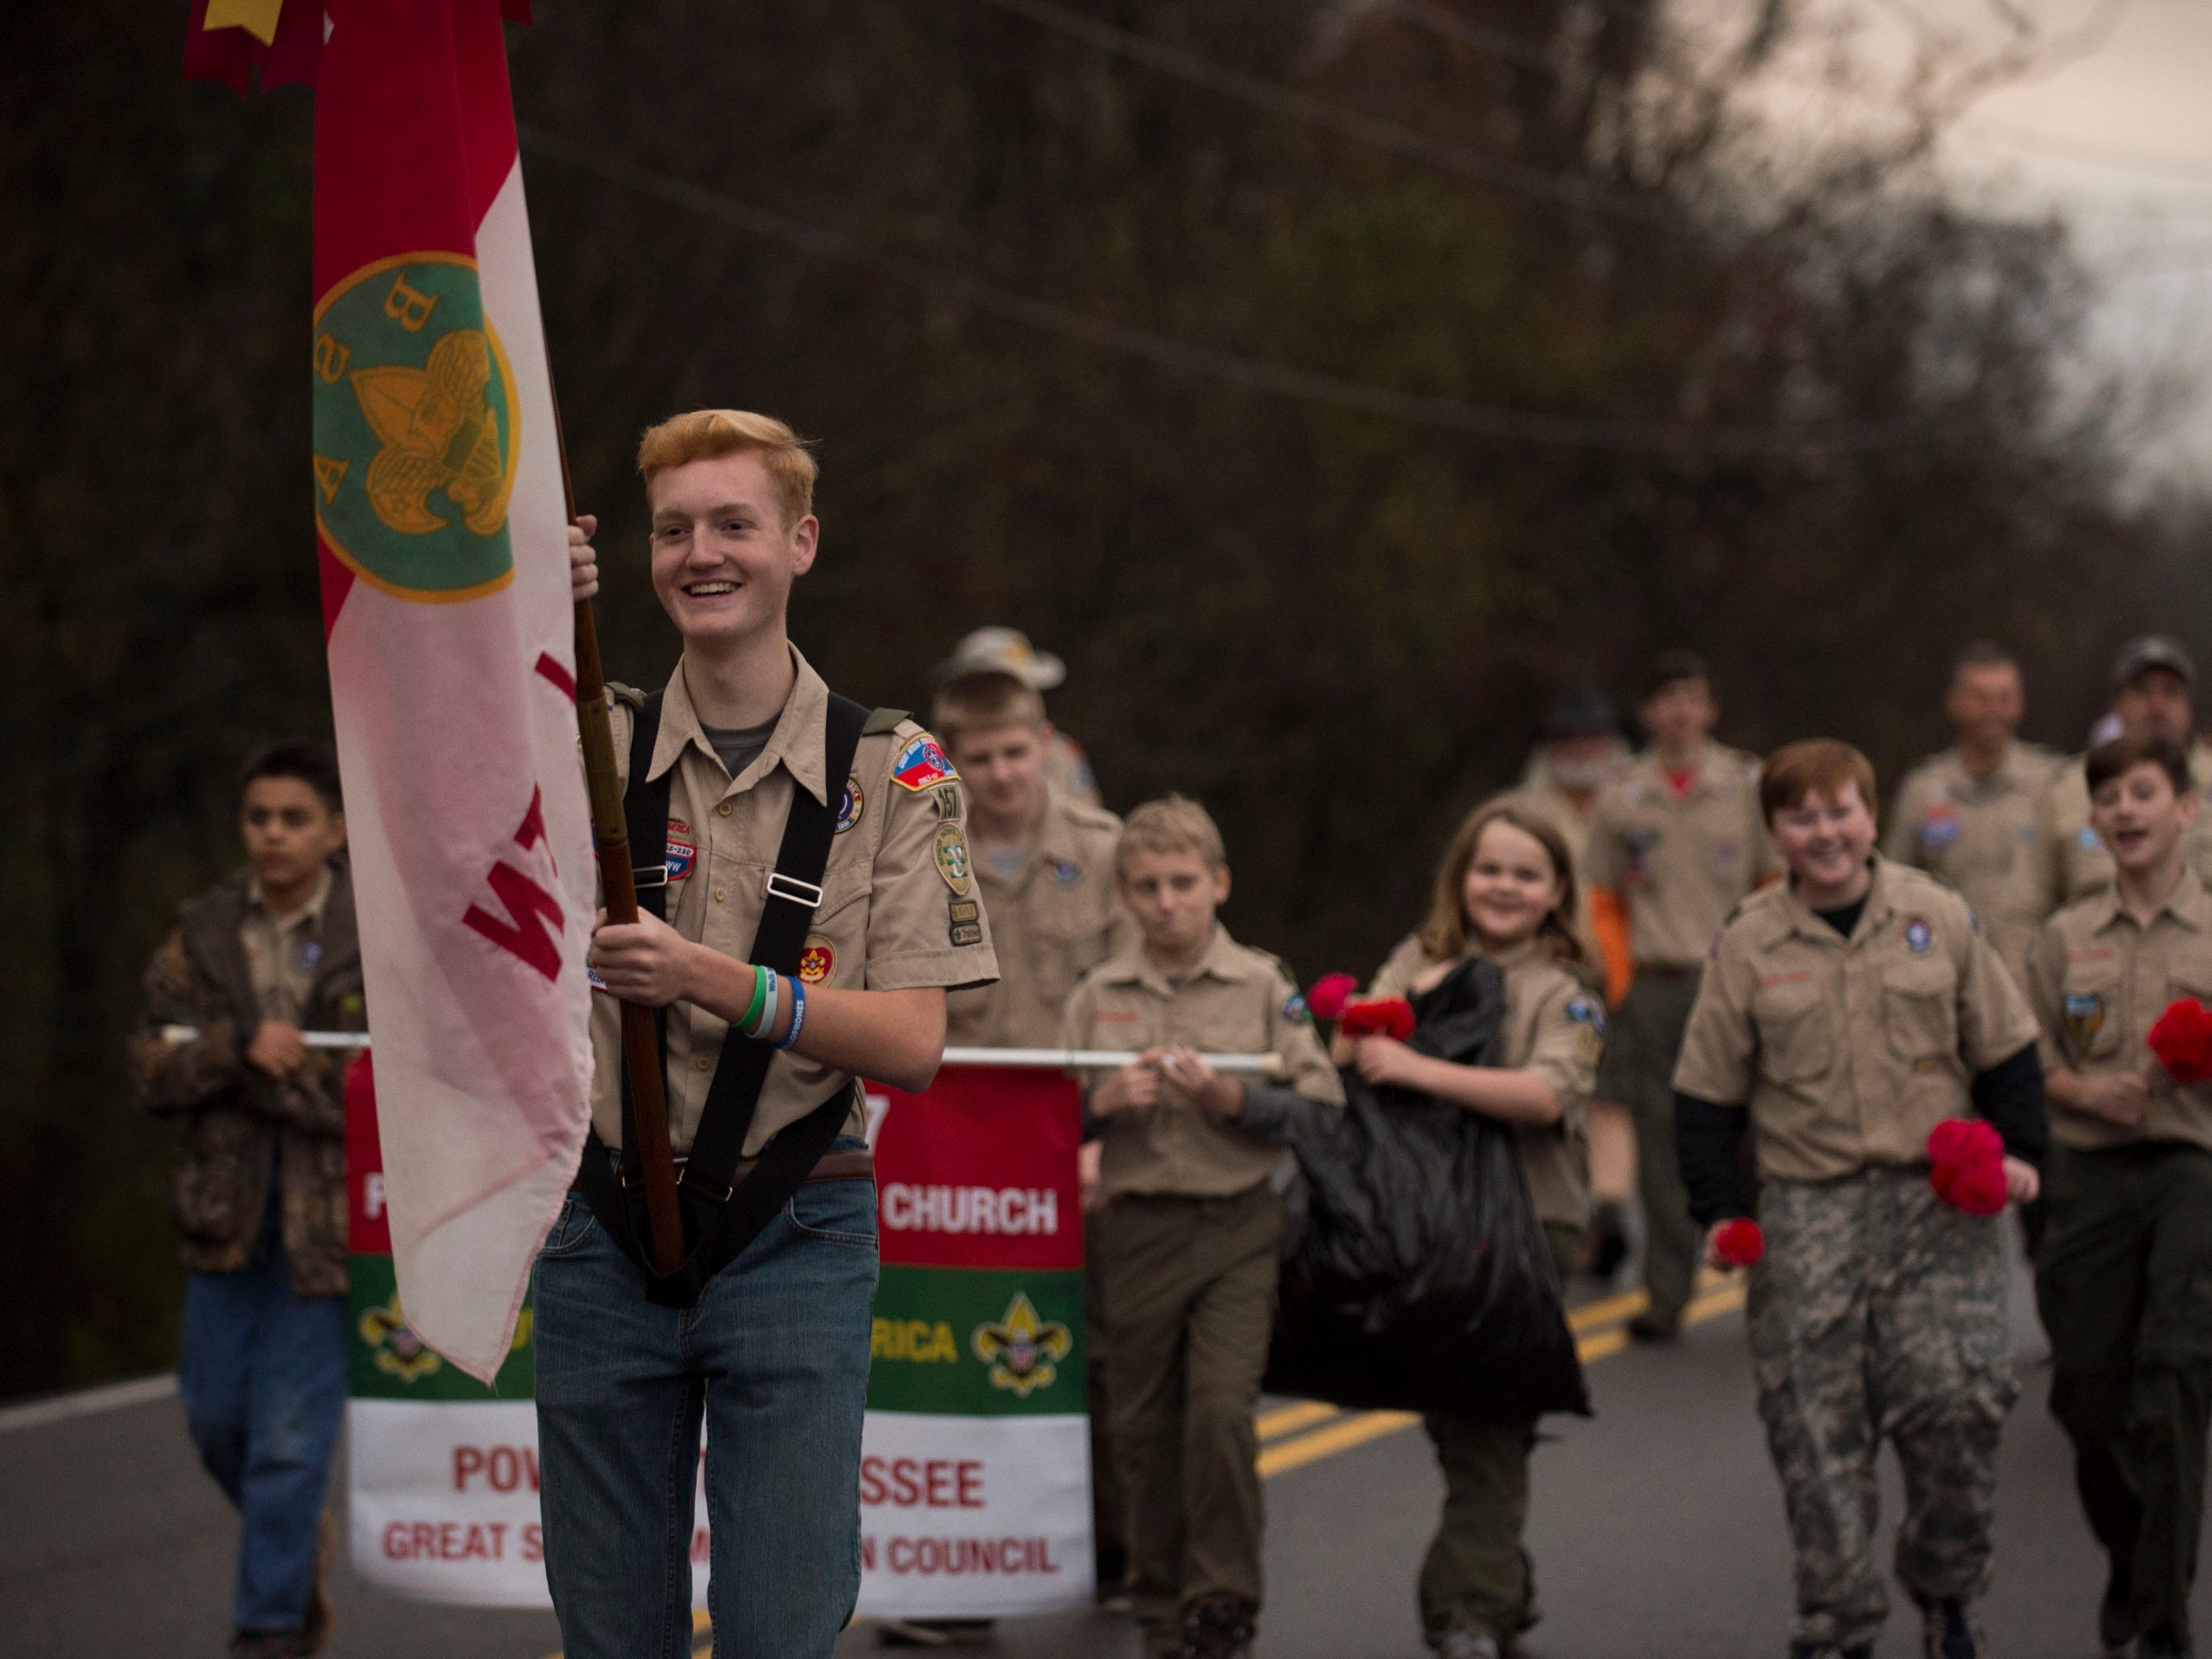 Boy Scout Troop 157 leads the Powell Lions Club Christmas Parade on Saturday, December 1, 2018.